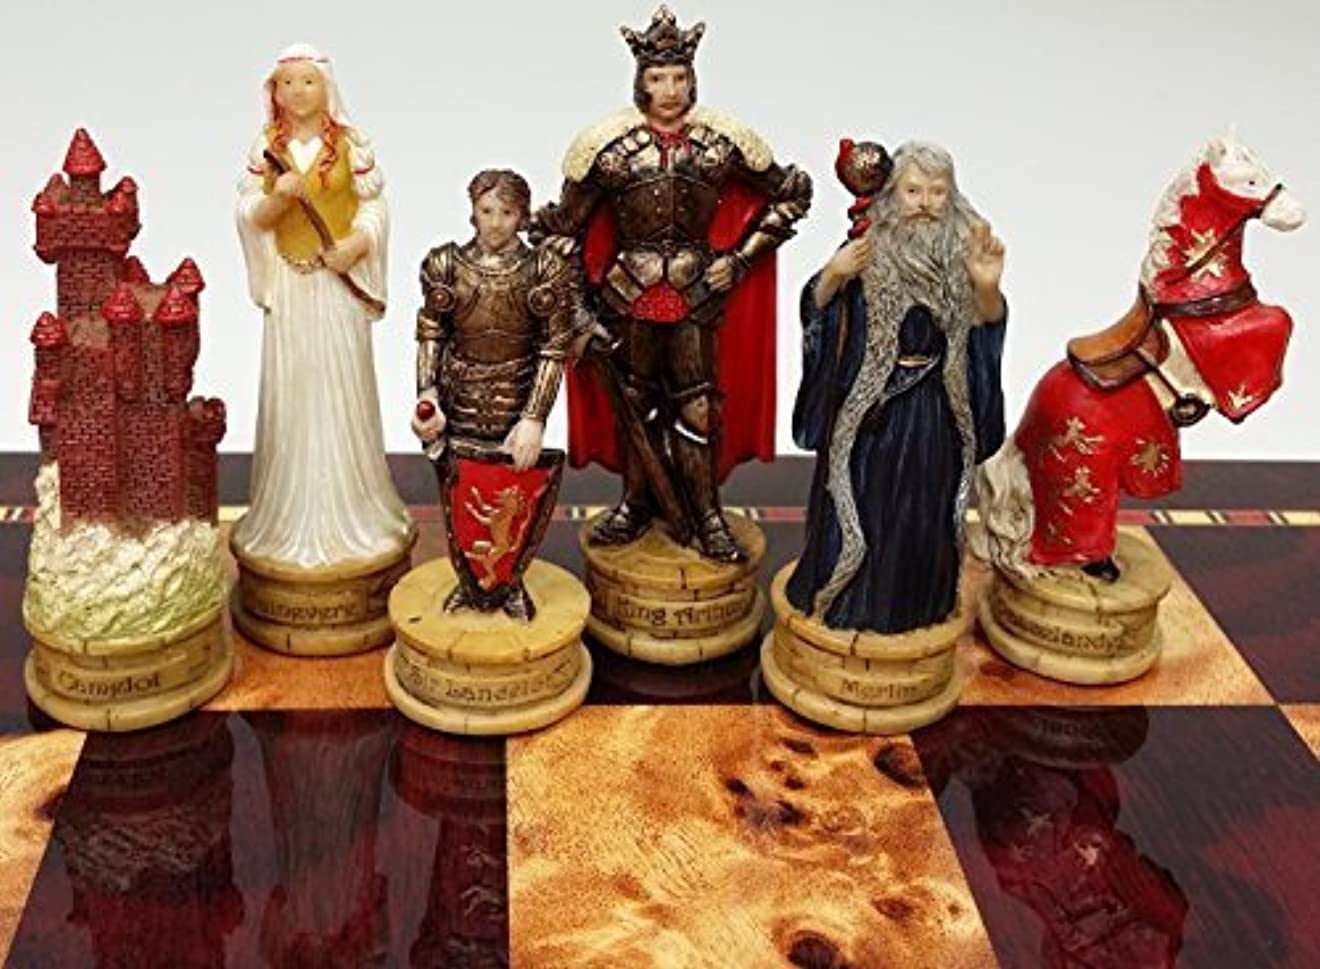 King Arthur / Sir Lancelot Medieval Times Camelot Chess Men Set- NO BOARD [並行輸入品]